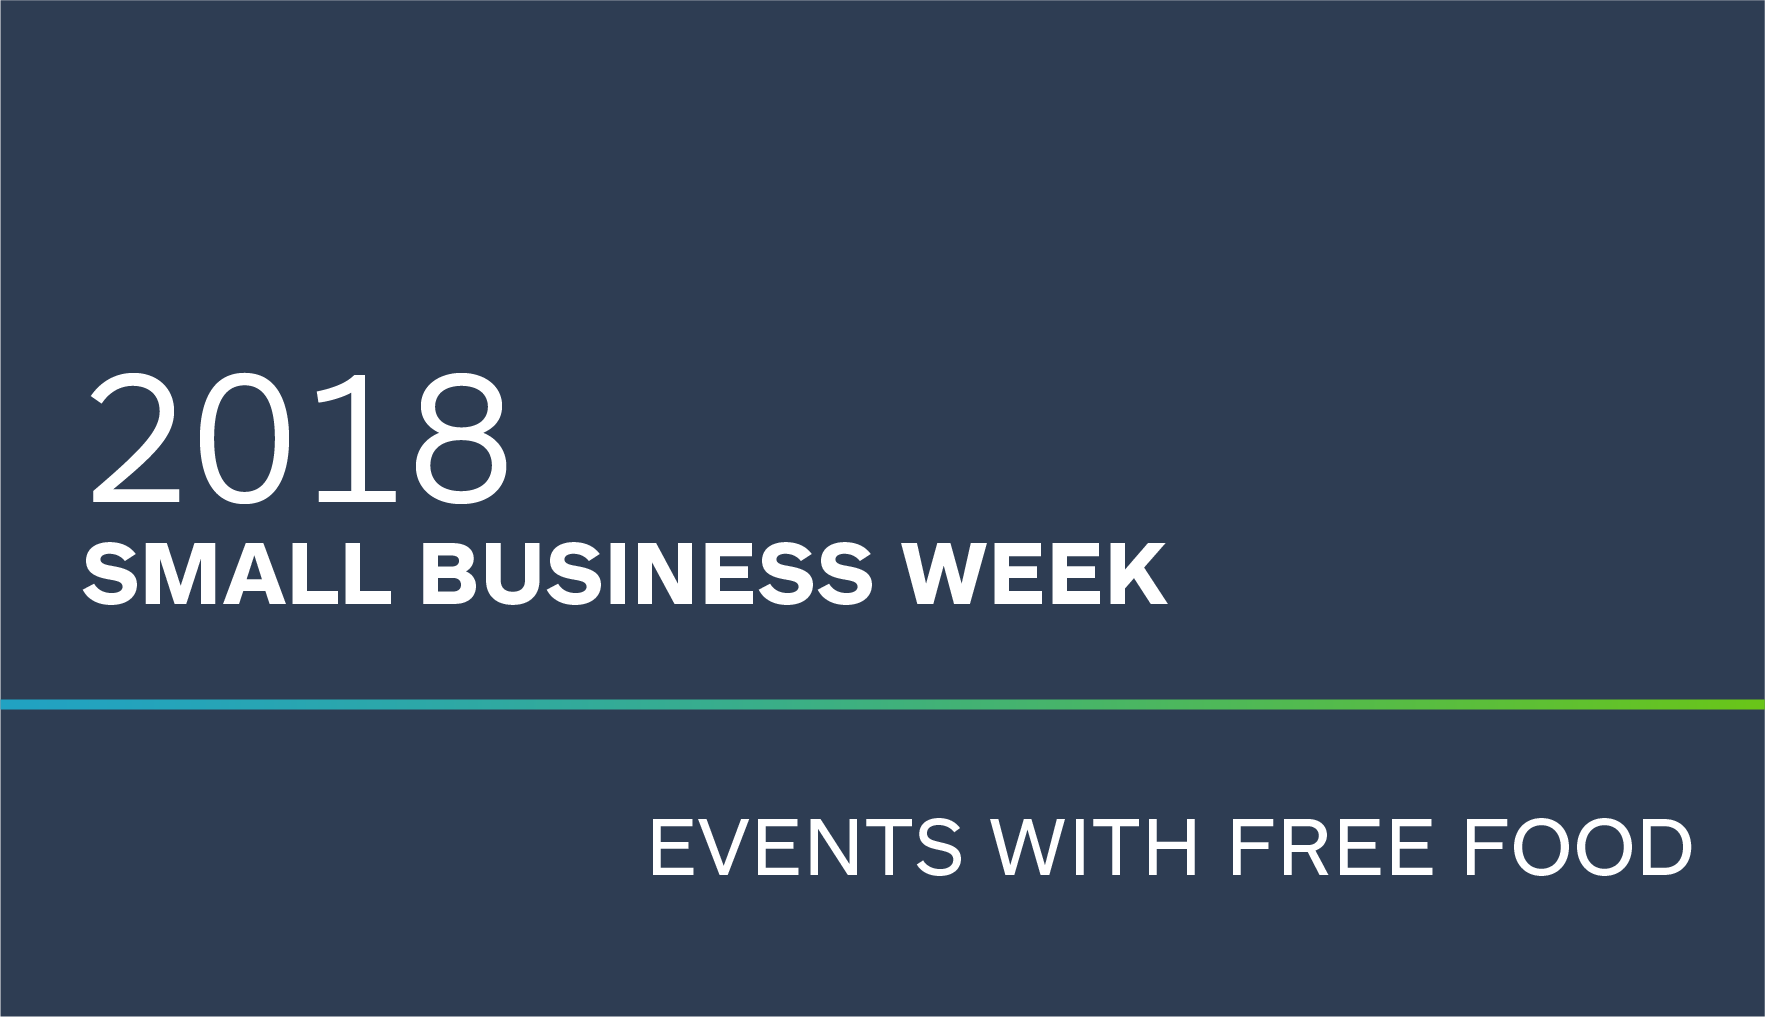 2018 Small Business Week Events (with Free Food)